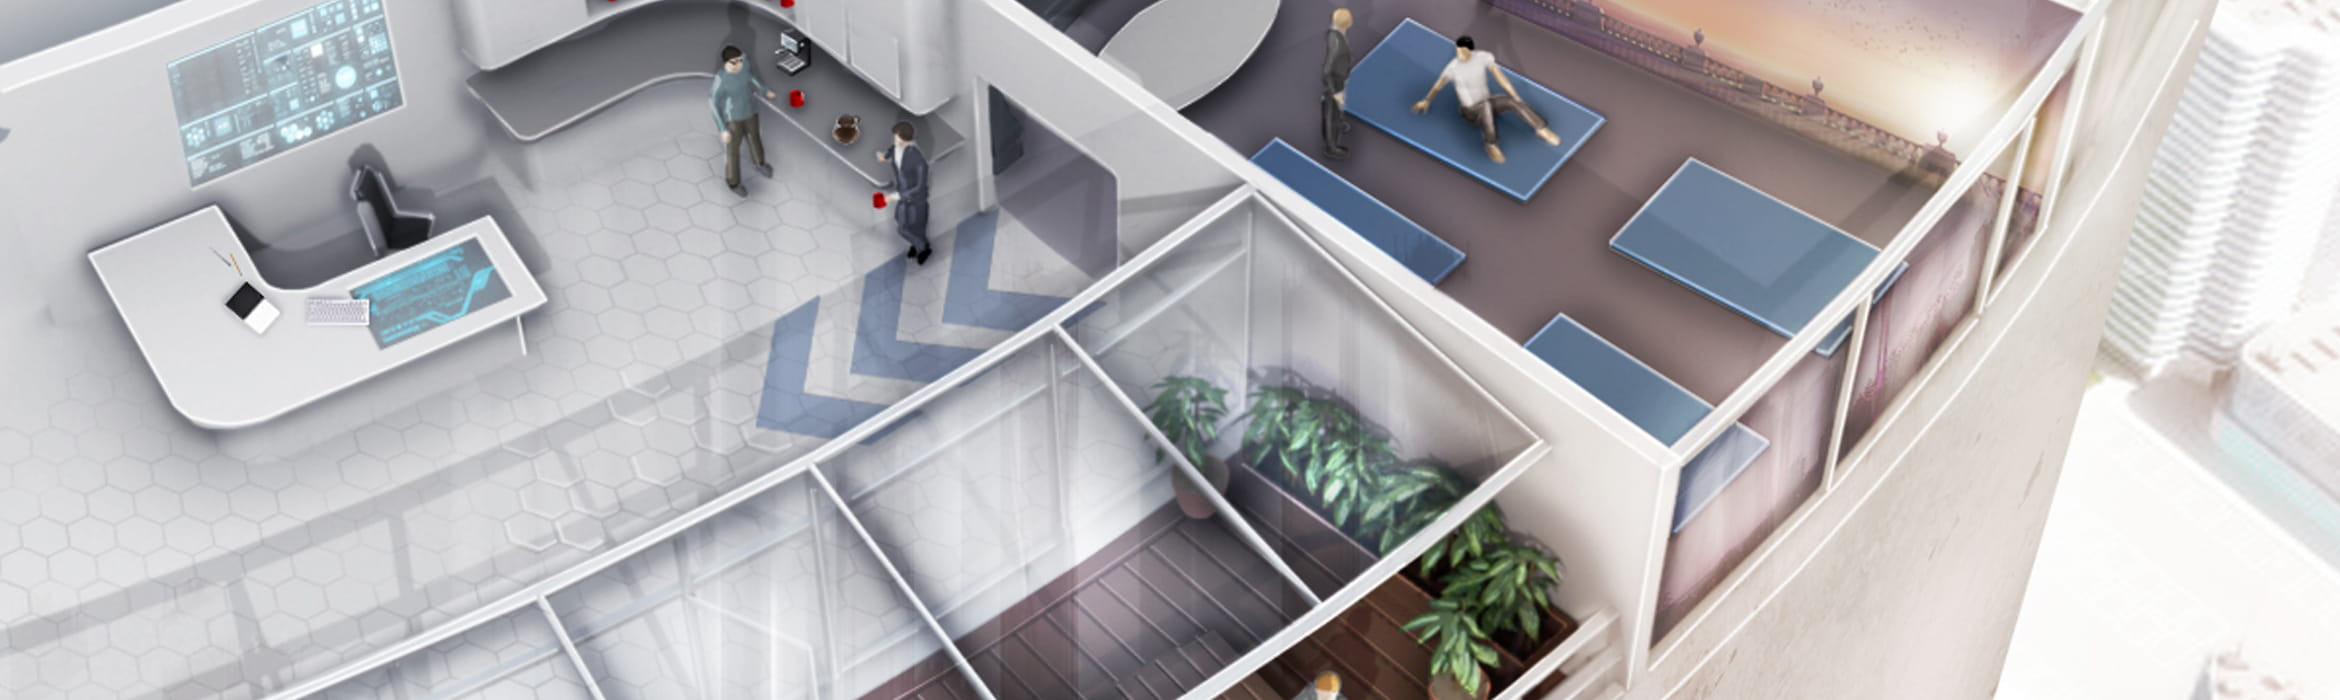 Illustration of an office designed for human interaction